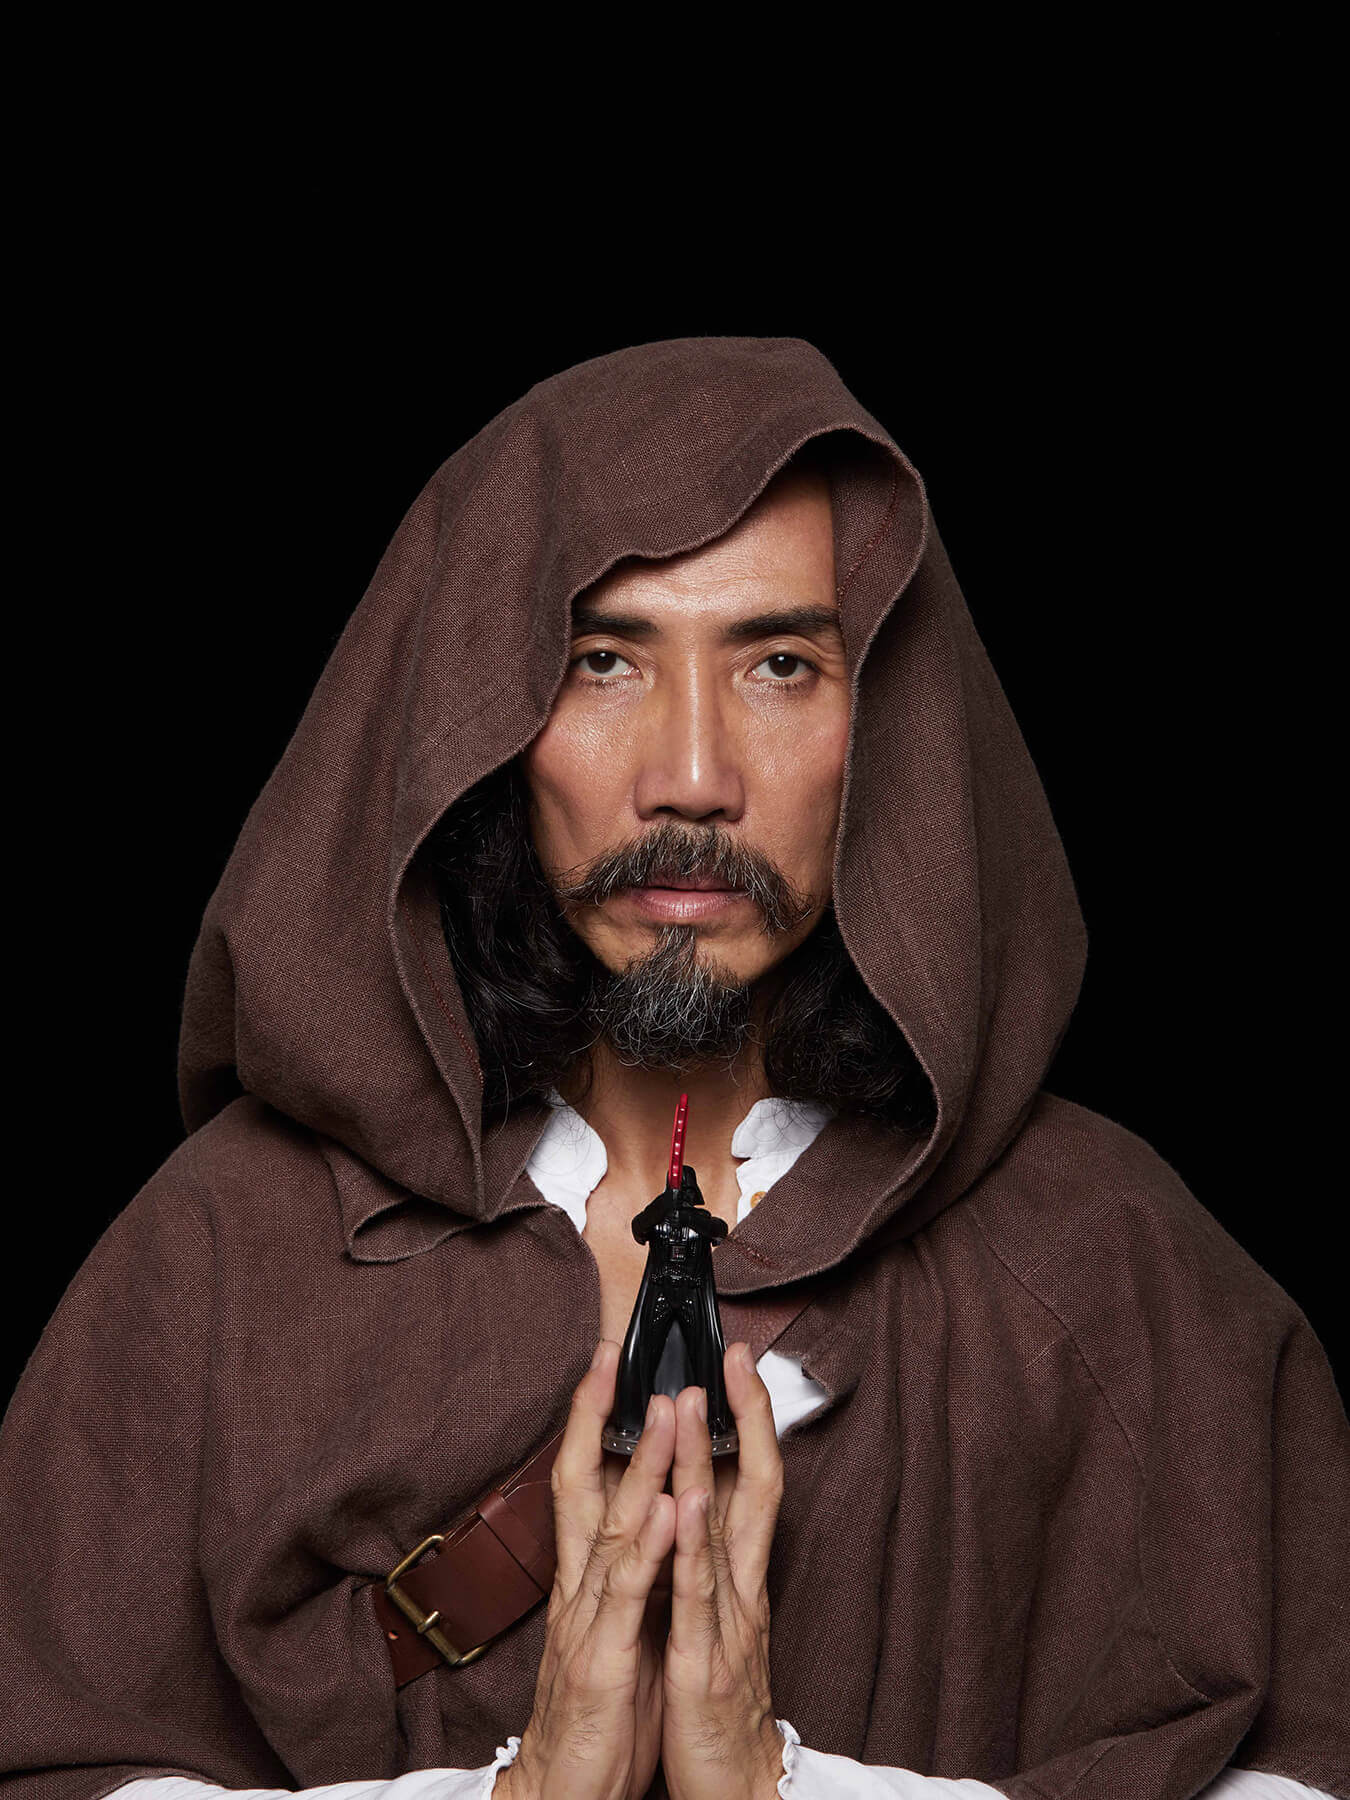 14 Dec 2017 Derong is photographed as Star Wars character Obi-Wan Kenobi